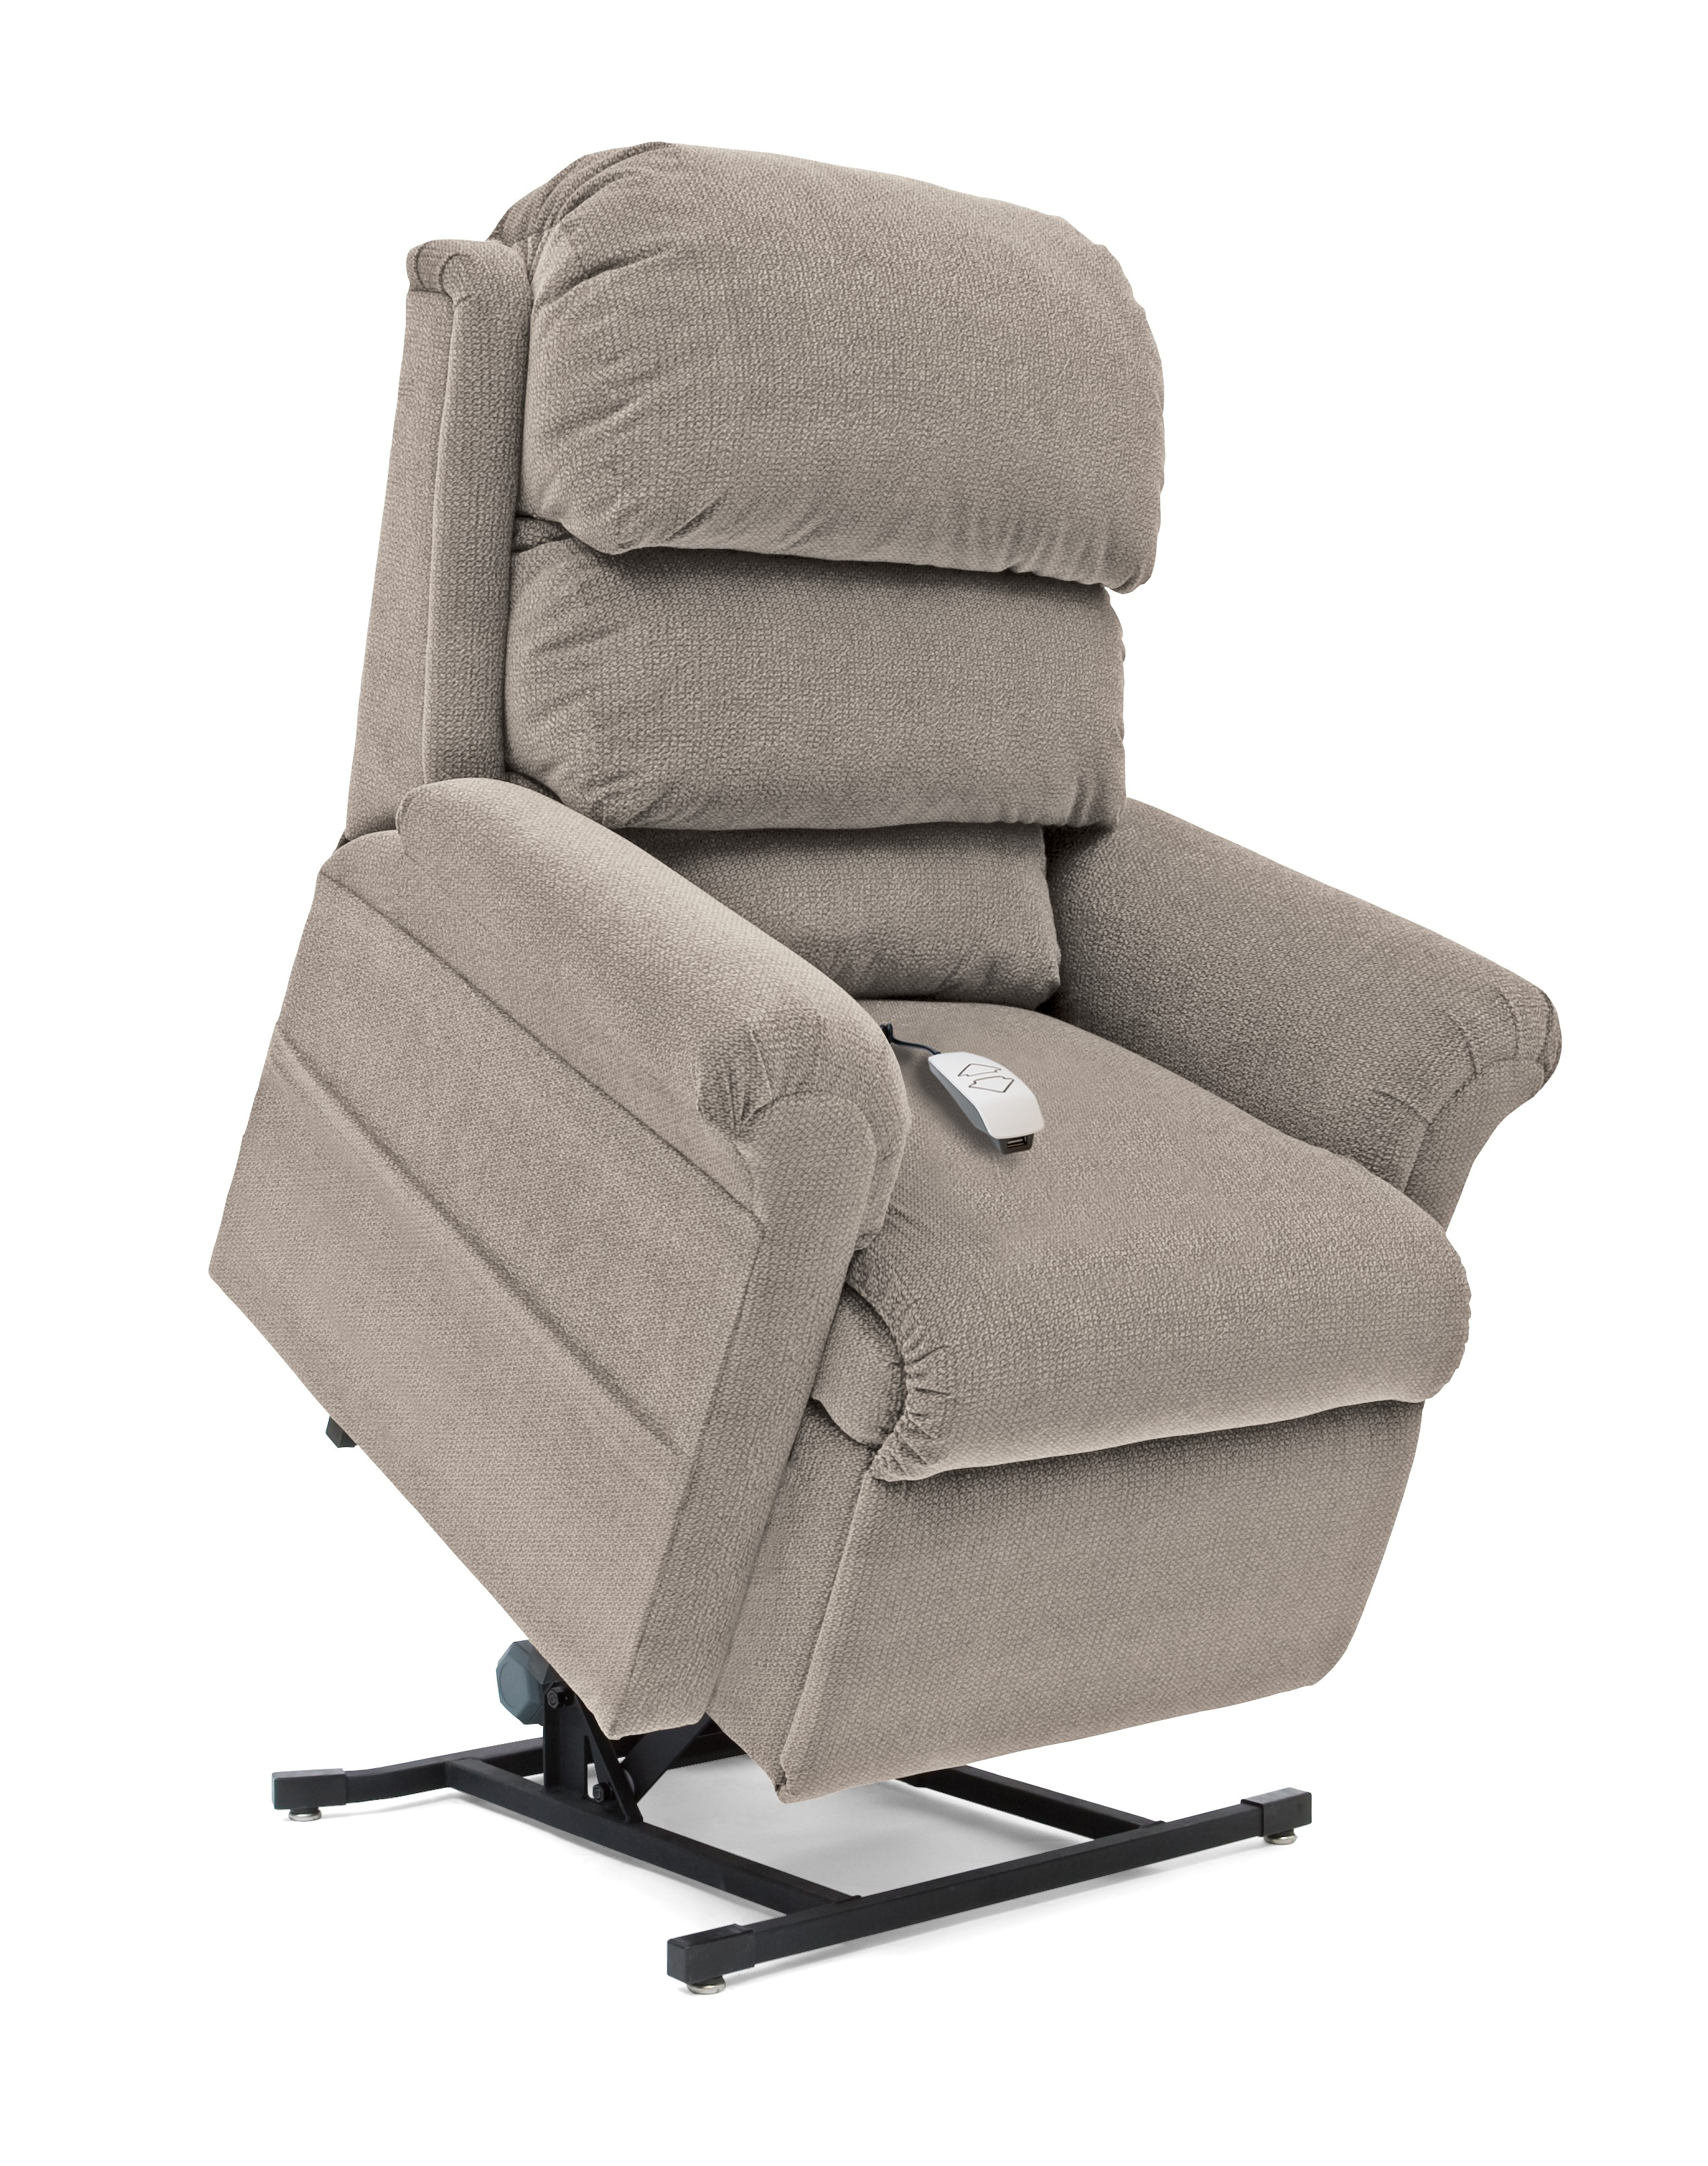 rent lift chair jolly covers for sale pride elegance collection pillow back lc 470s